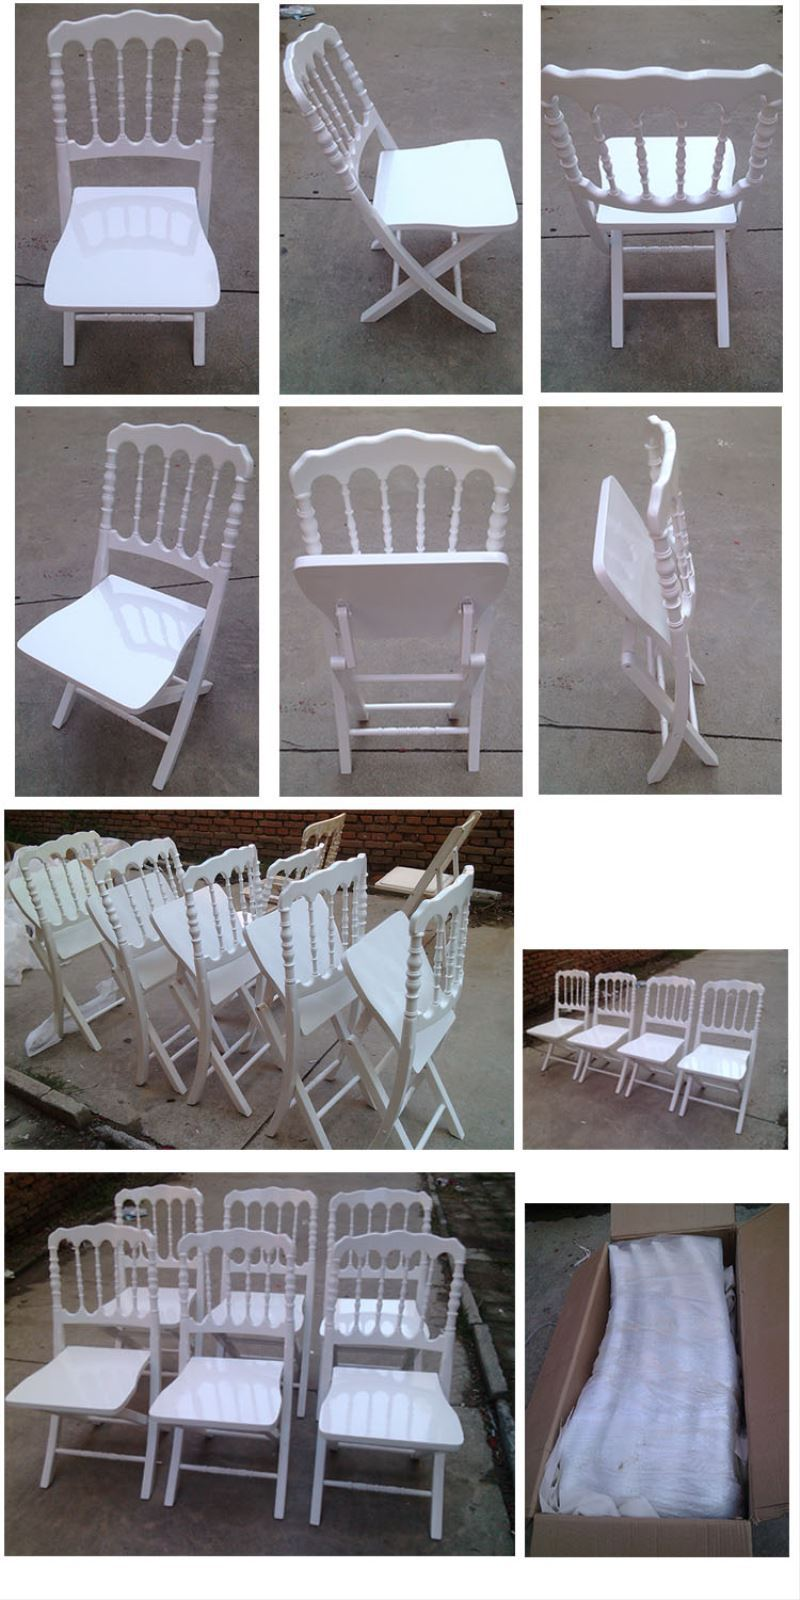 solid wood dining chairs rental event folding chair for Party and Wedding